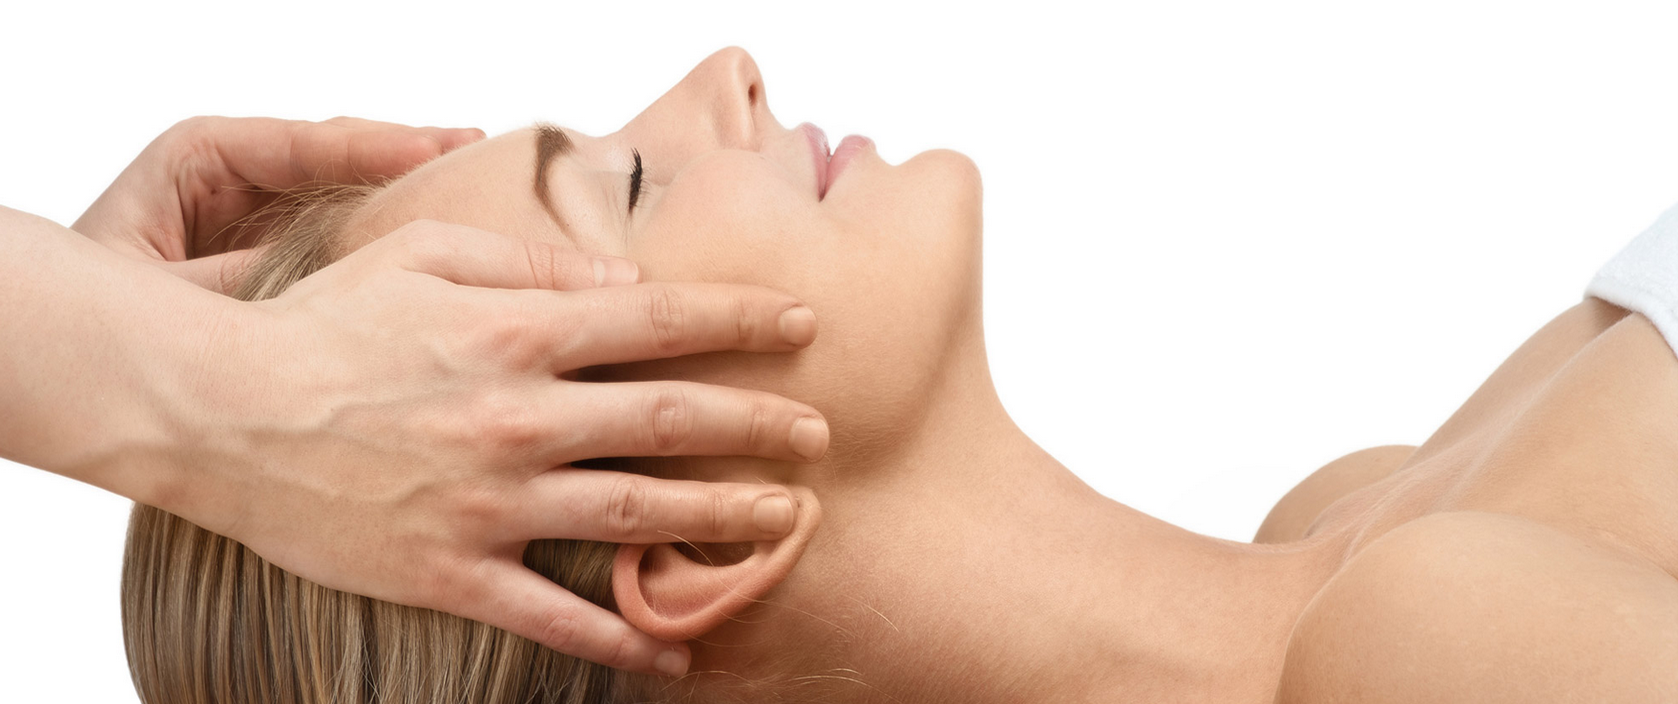 description and analysis of craniosacral therapy Craniosacral therapy is a gentle, hands-on treatment method that focuses on alleviating restrictions to physiological motion of all the bones of the skull, including the face and mouth, as well as the vertebral column, sacrum, coccyx and pelvis.